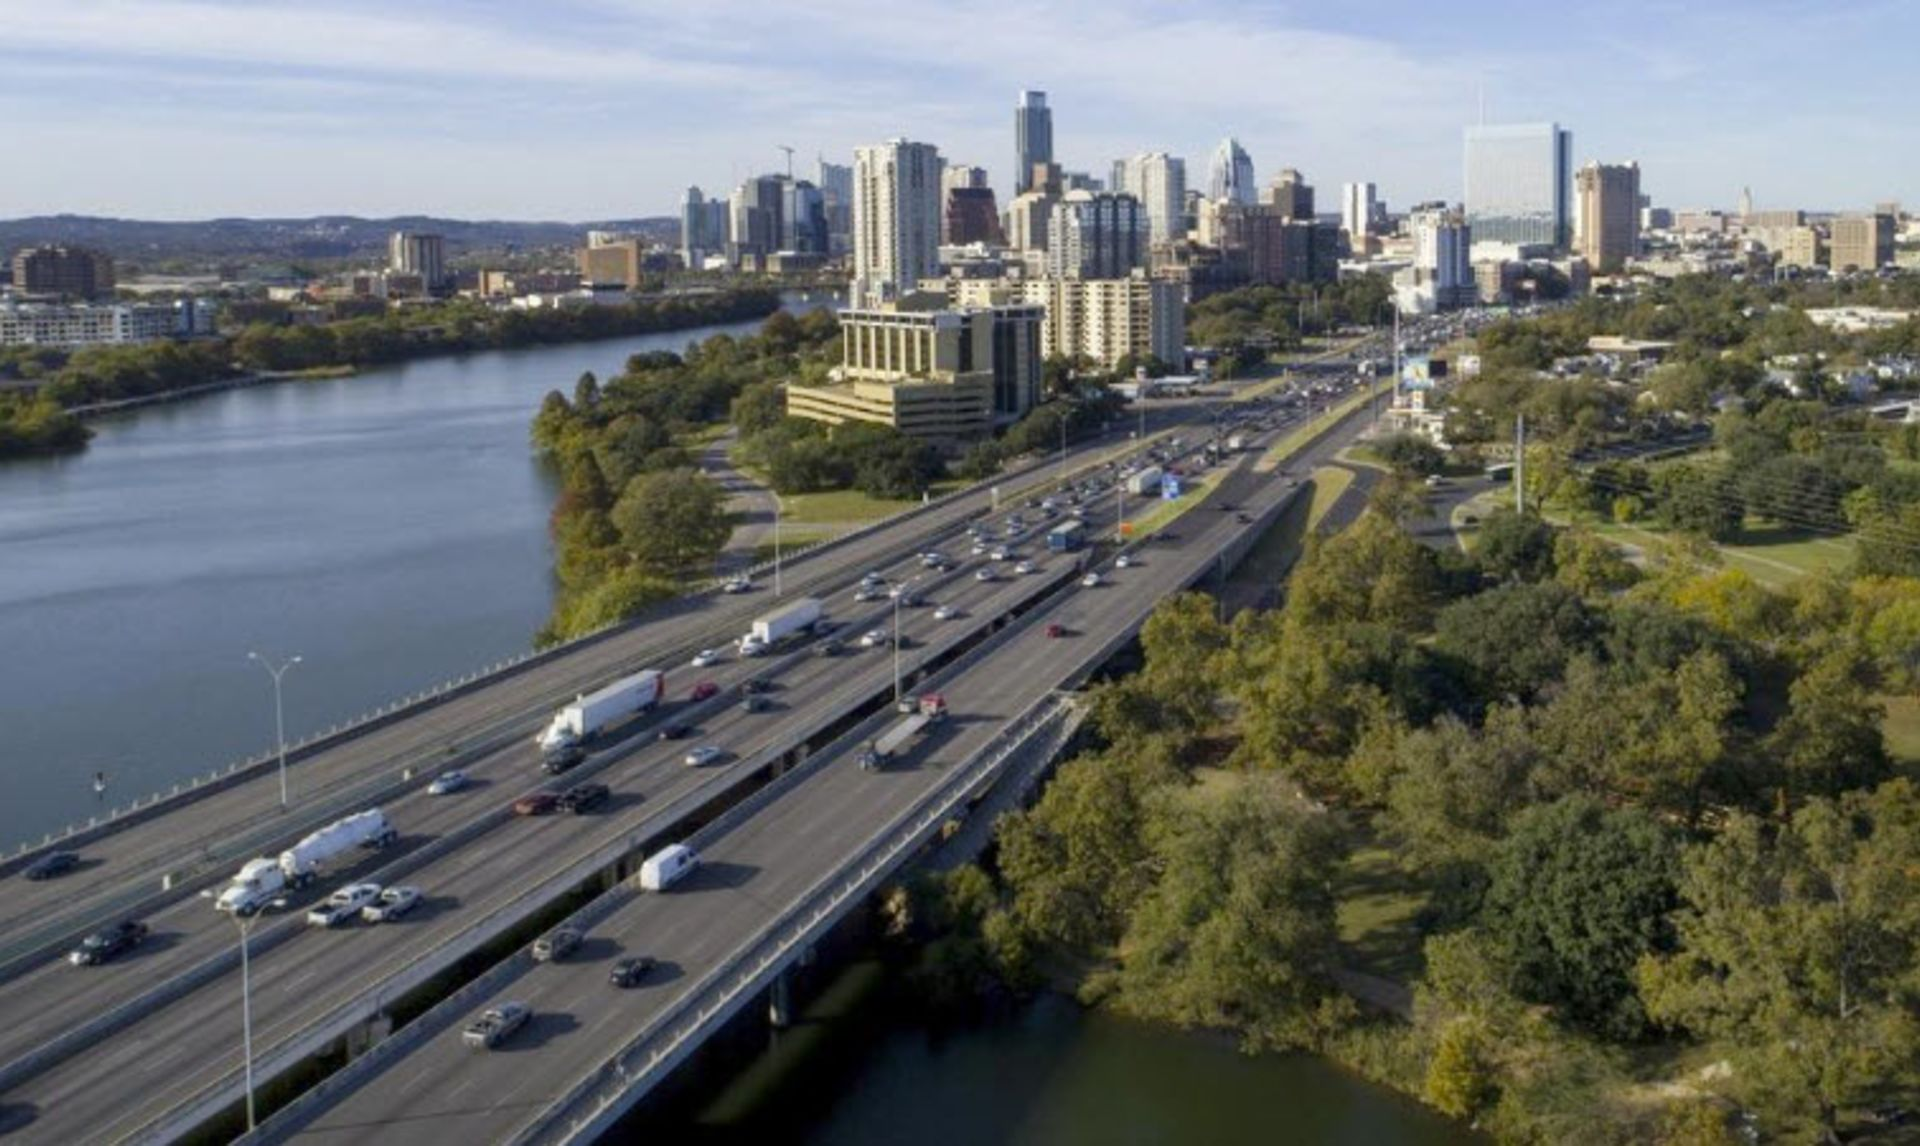 New lanes coming to I-35, but not in downtown Austin